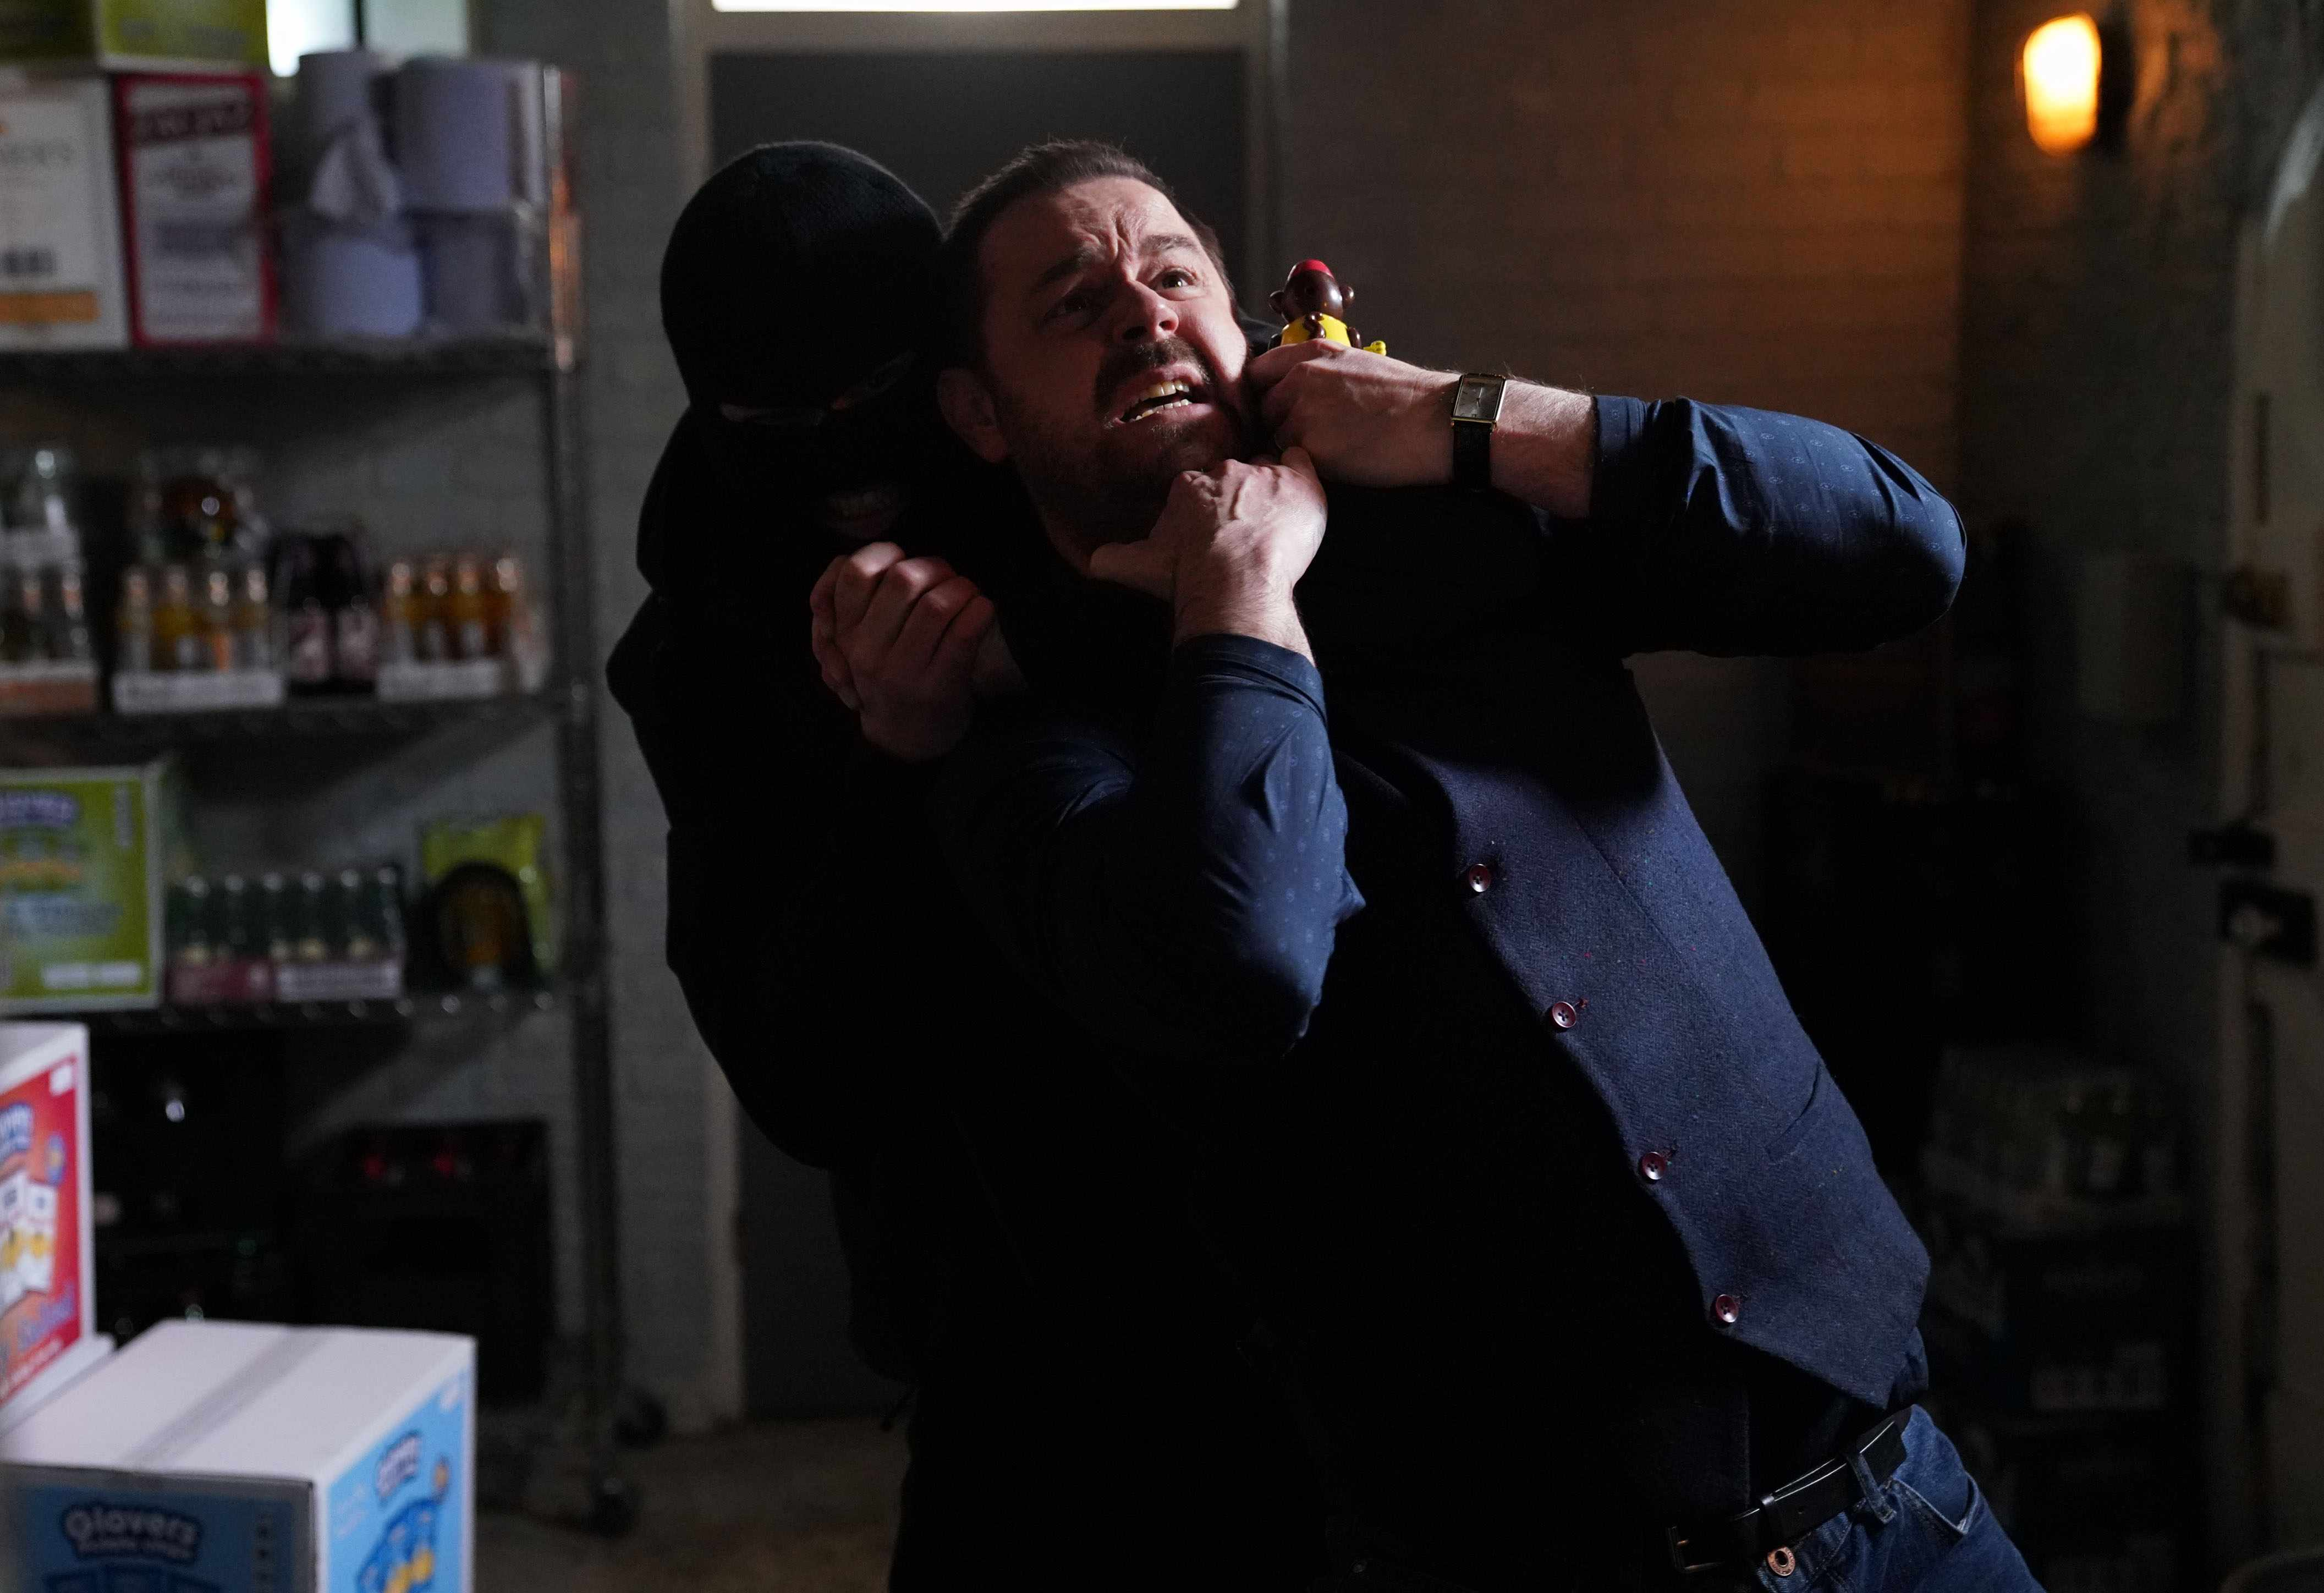 WARNING: Embargoed for publication until 00:00:01 on 09/05/2018 - Programme Name: EastEnders - April-June 2018 - TX: 08/05/2018 - Episode: EastEnders -April-June 2018 - 5703 (No. 5703) - Picture Shows: Mick gets jumped by a man in a balaclava Mick Carter (DANNY DYER) - (C) BBC - Photographer: Kieron McCarron